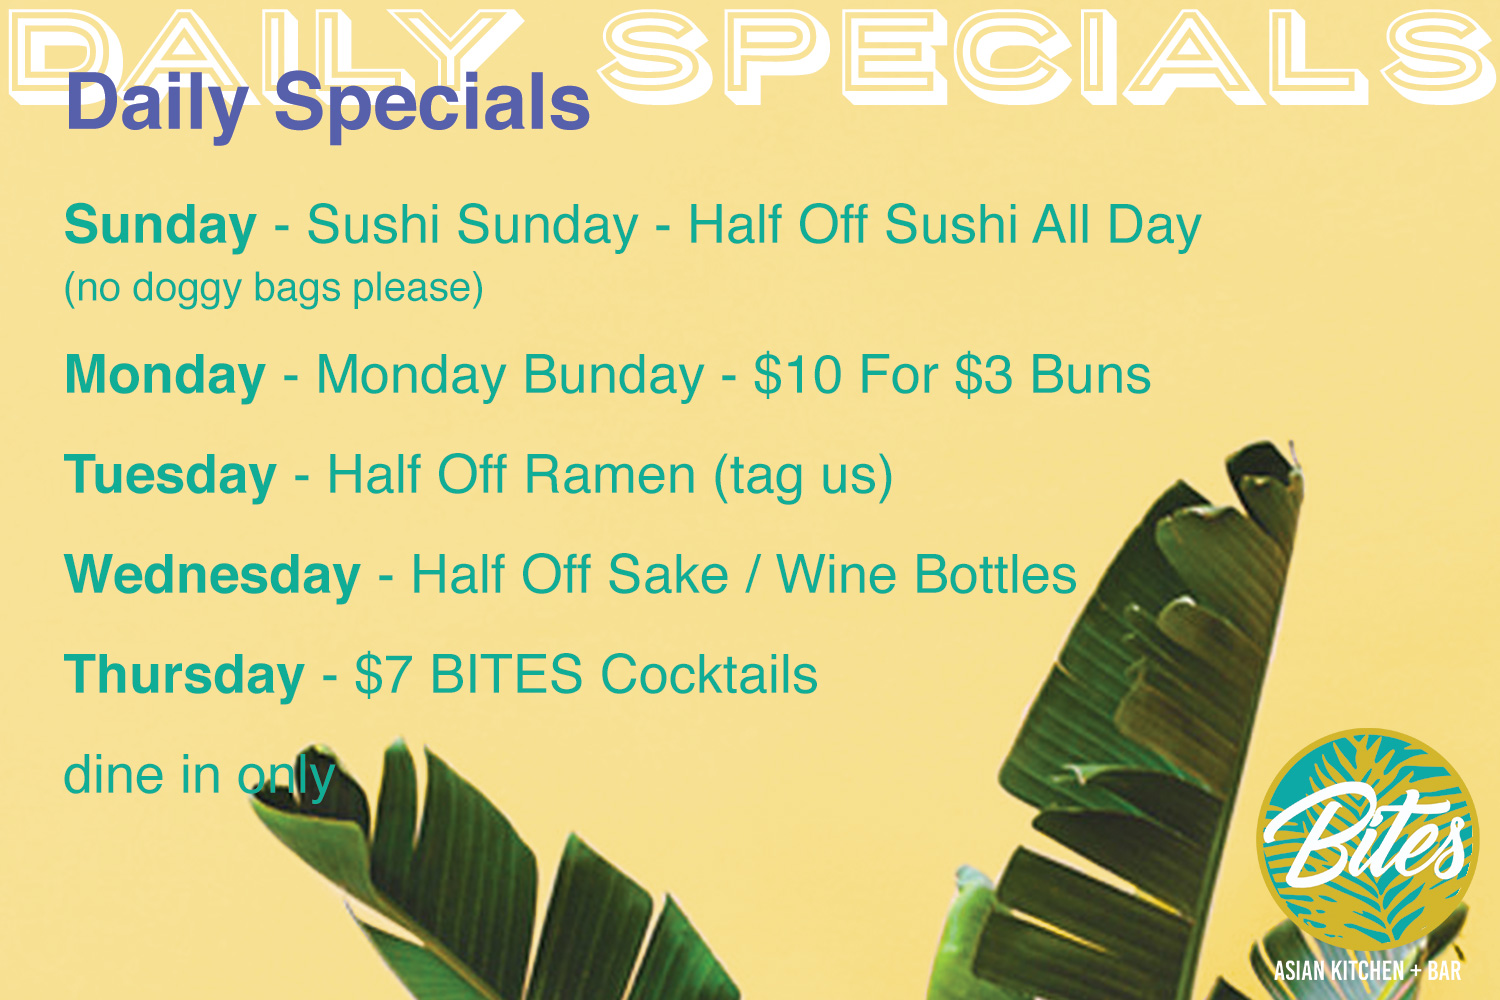 daily-specials-website.jpg